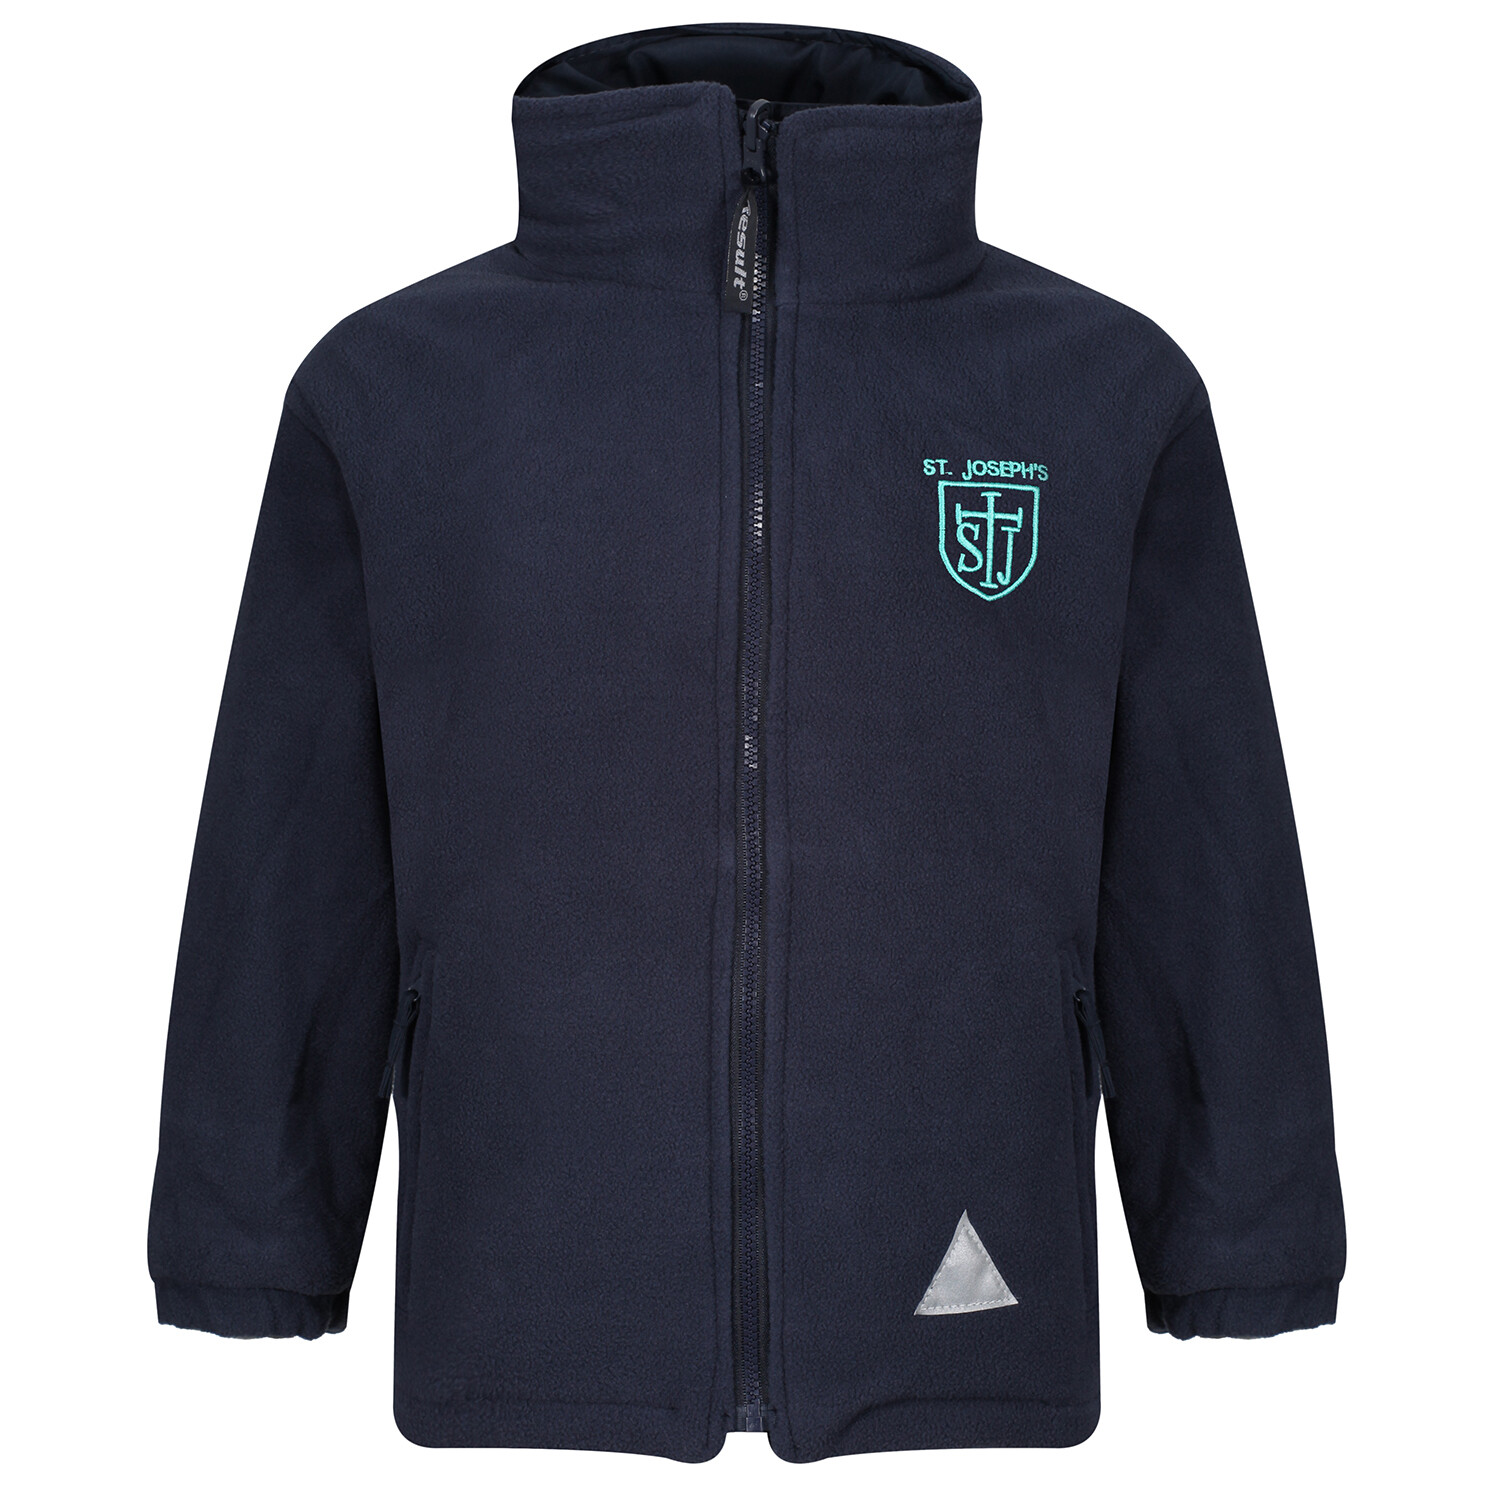 St Joseph's Primary Fleece